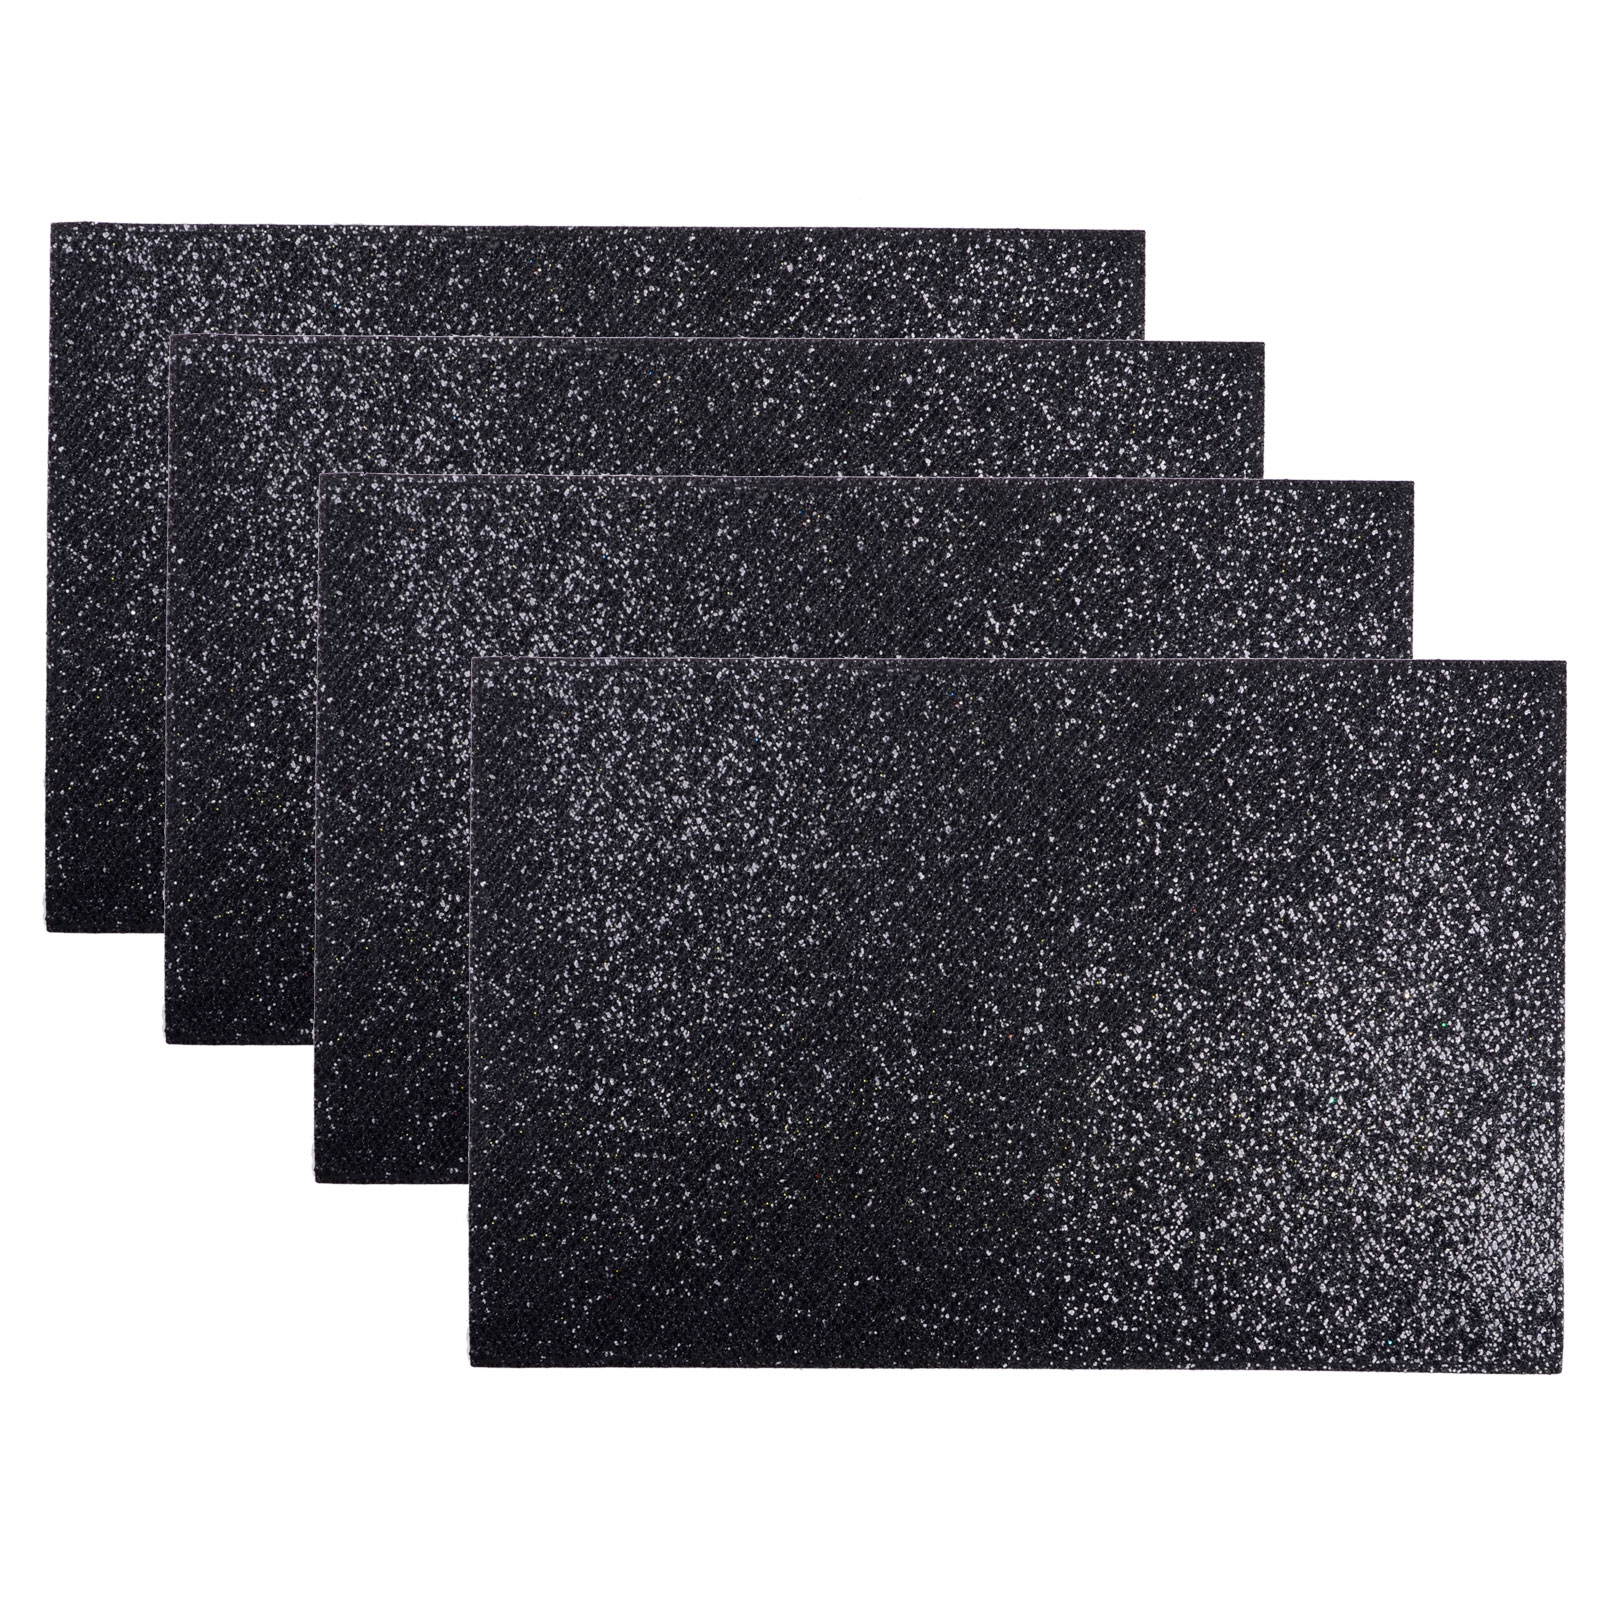 Set Of 4 Coasters Place Mats Dining Tableware Glitter